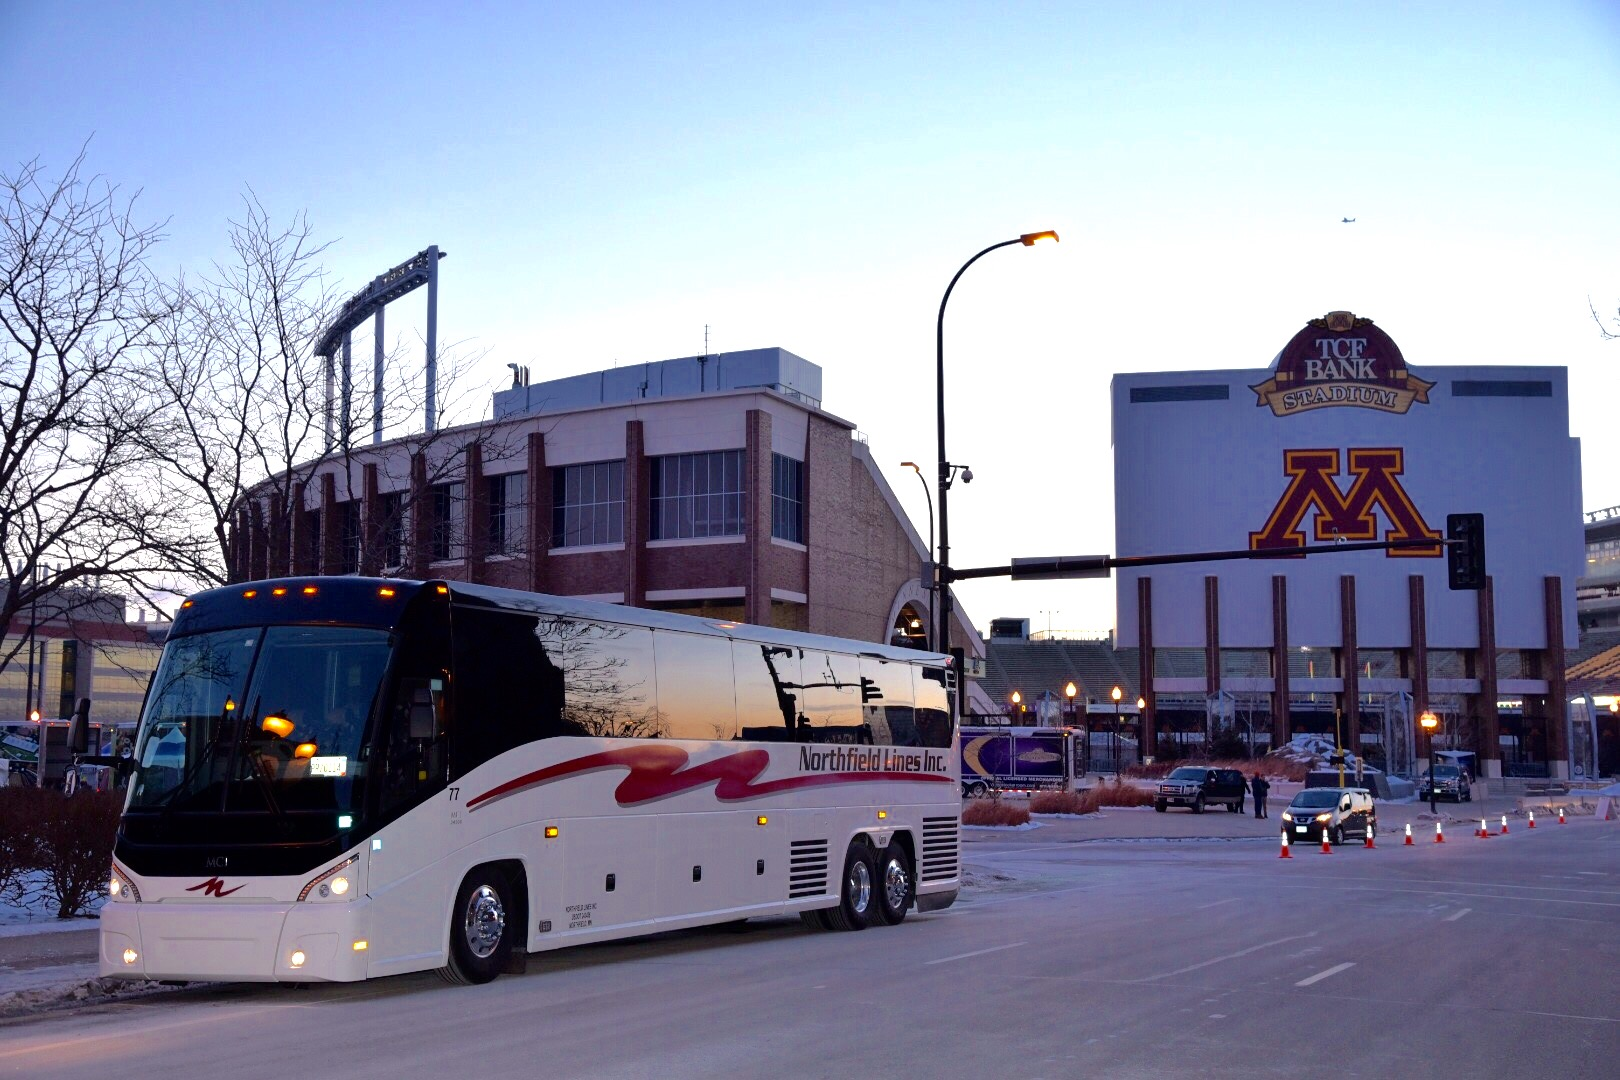 Private Outings - Worry-Free Charter Bus Travel with Northfield Lines